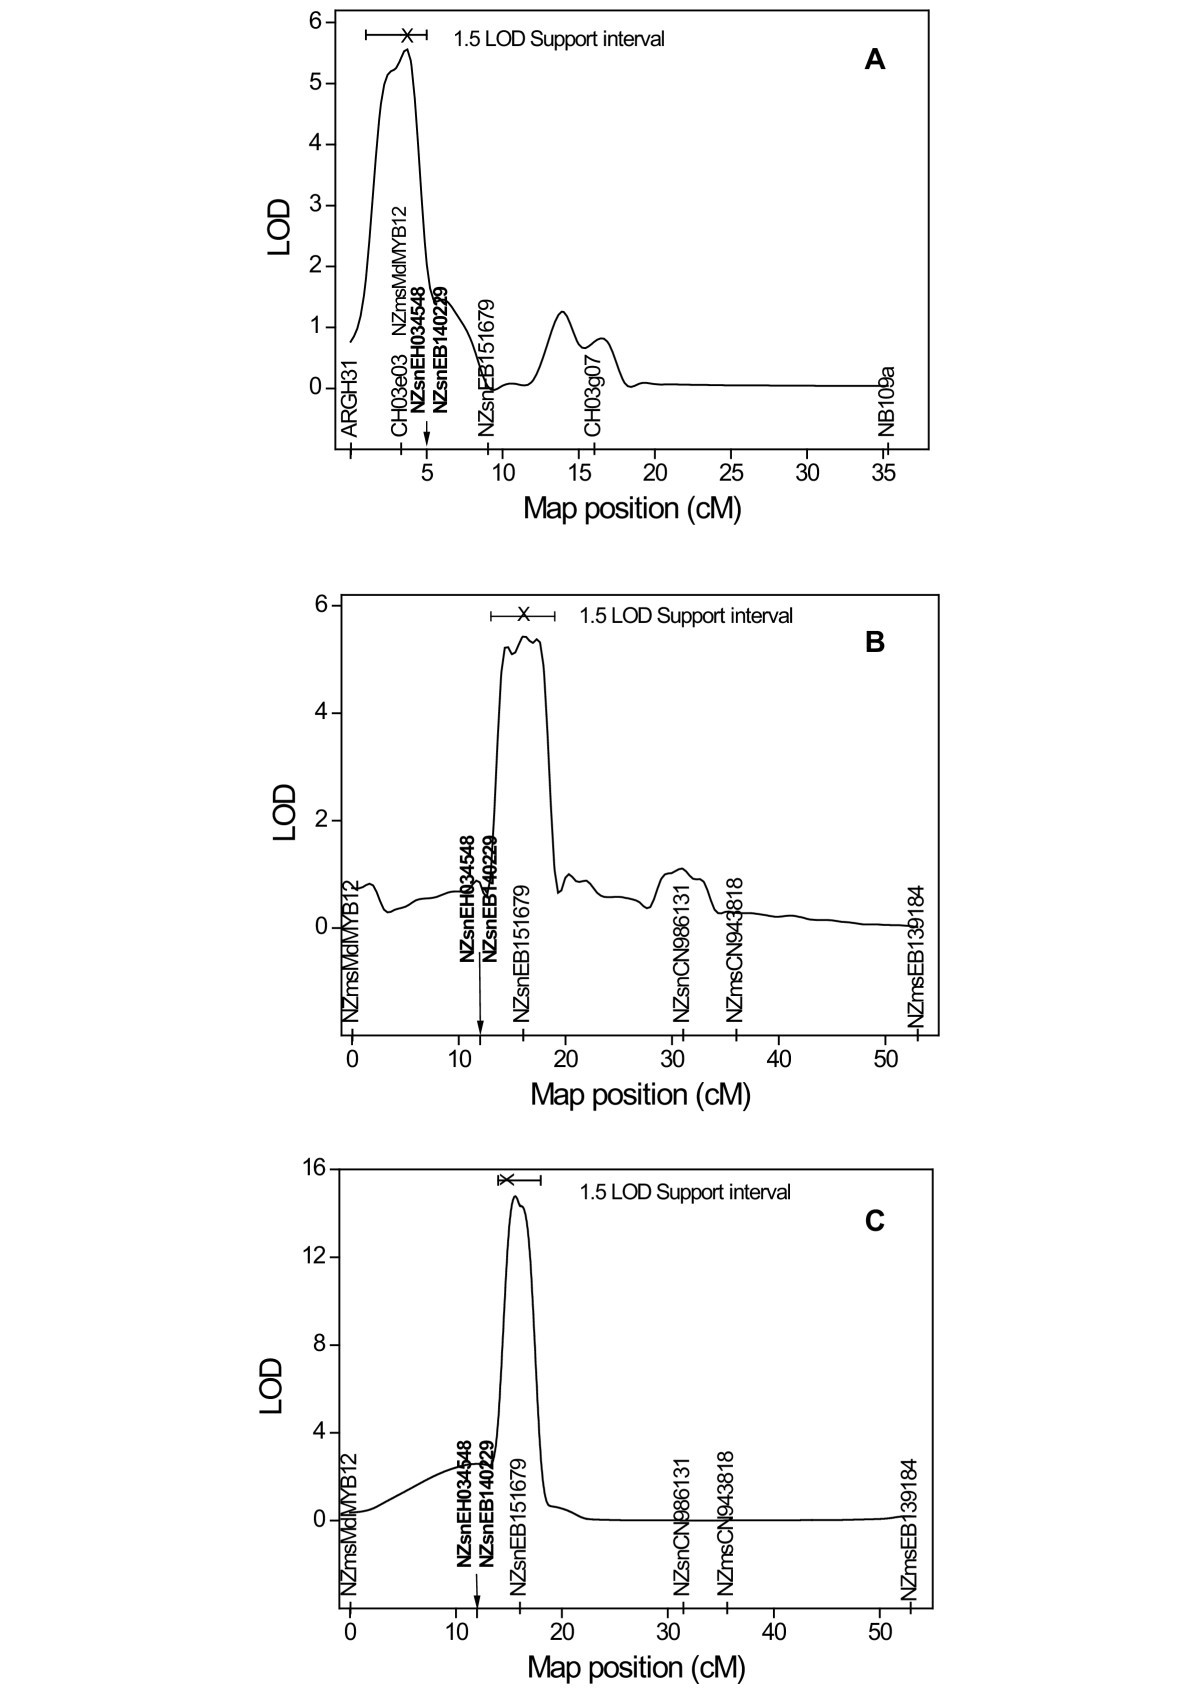 Putative Resistance Gene Markers Associated With Quantitative Trait Paul Reed Smith 408 Wiring Diagram Figure 3